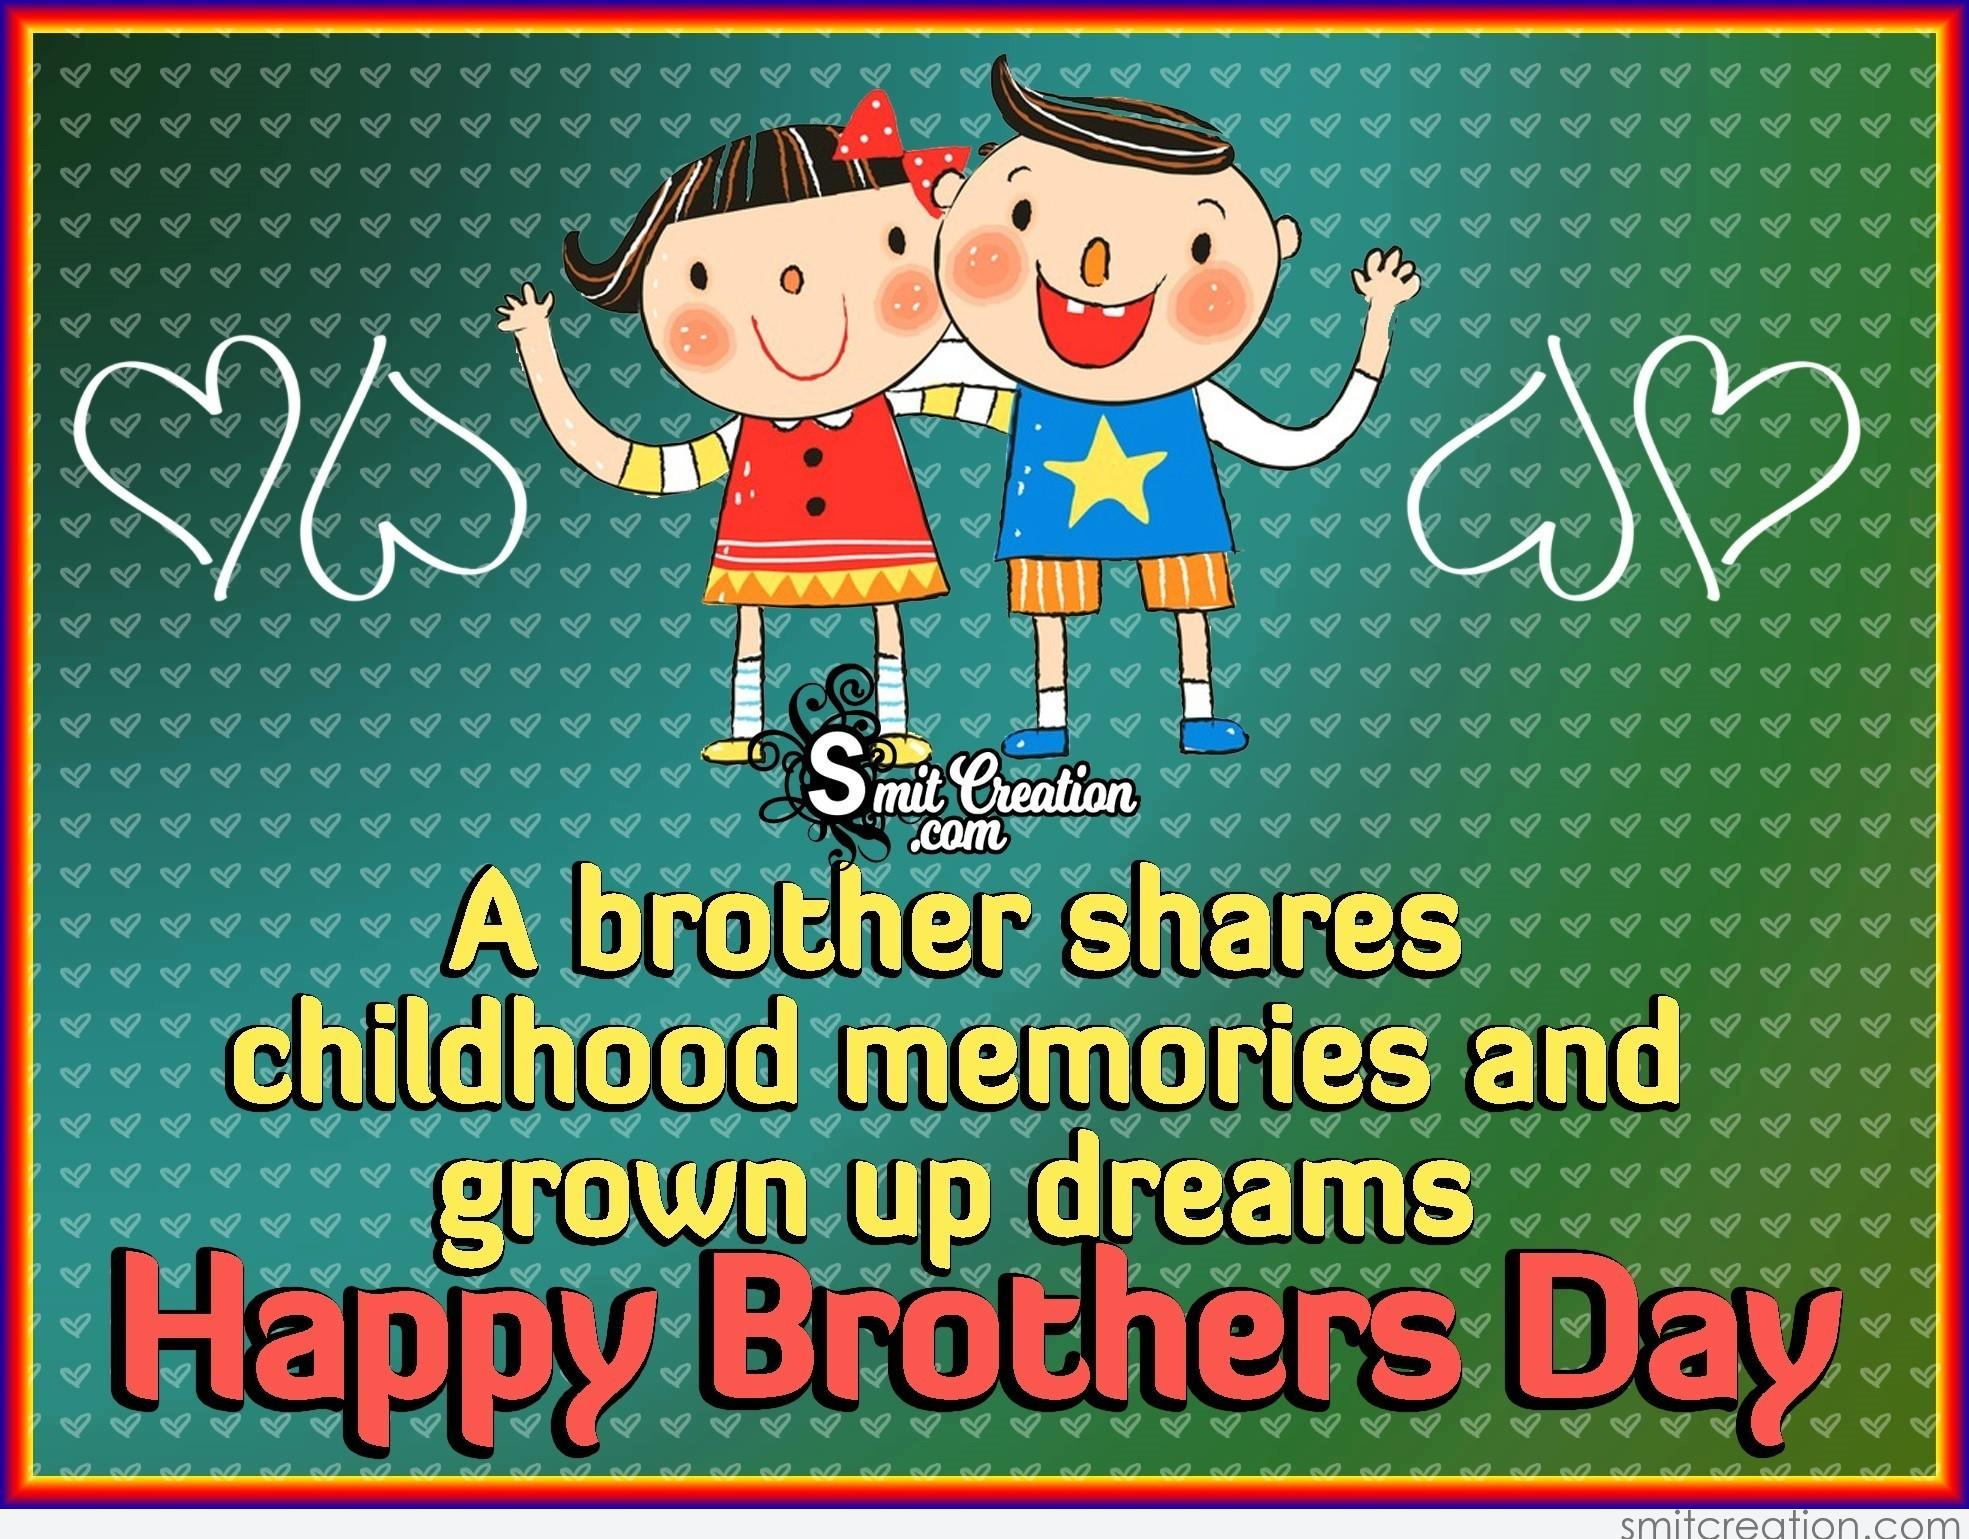 Happy Brothers Day A Brother Shares Childhood Memories 1969x1539